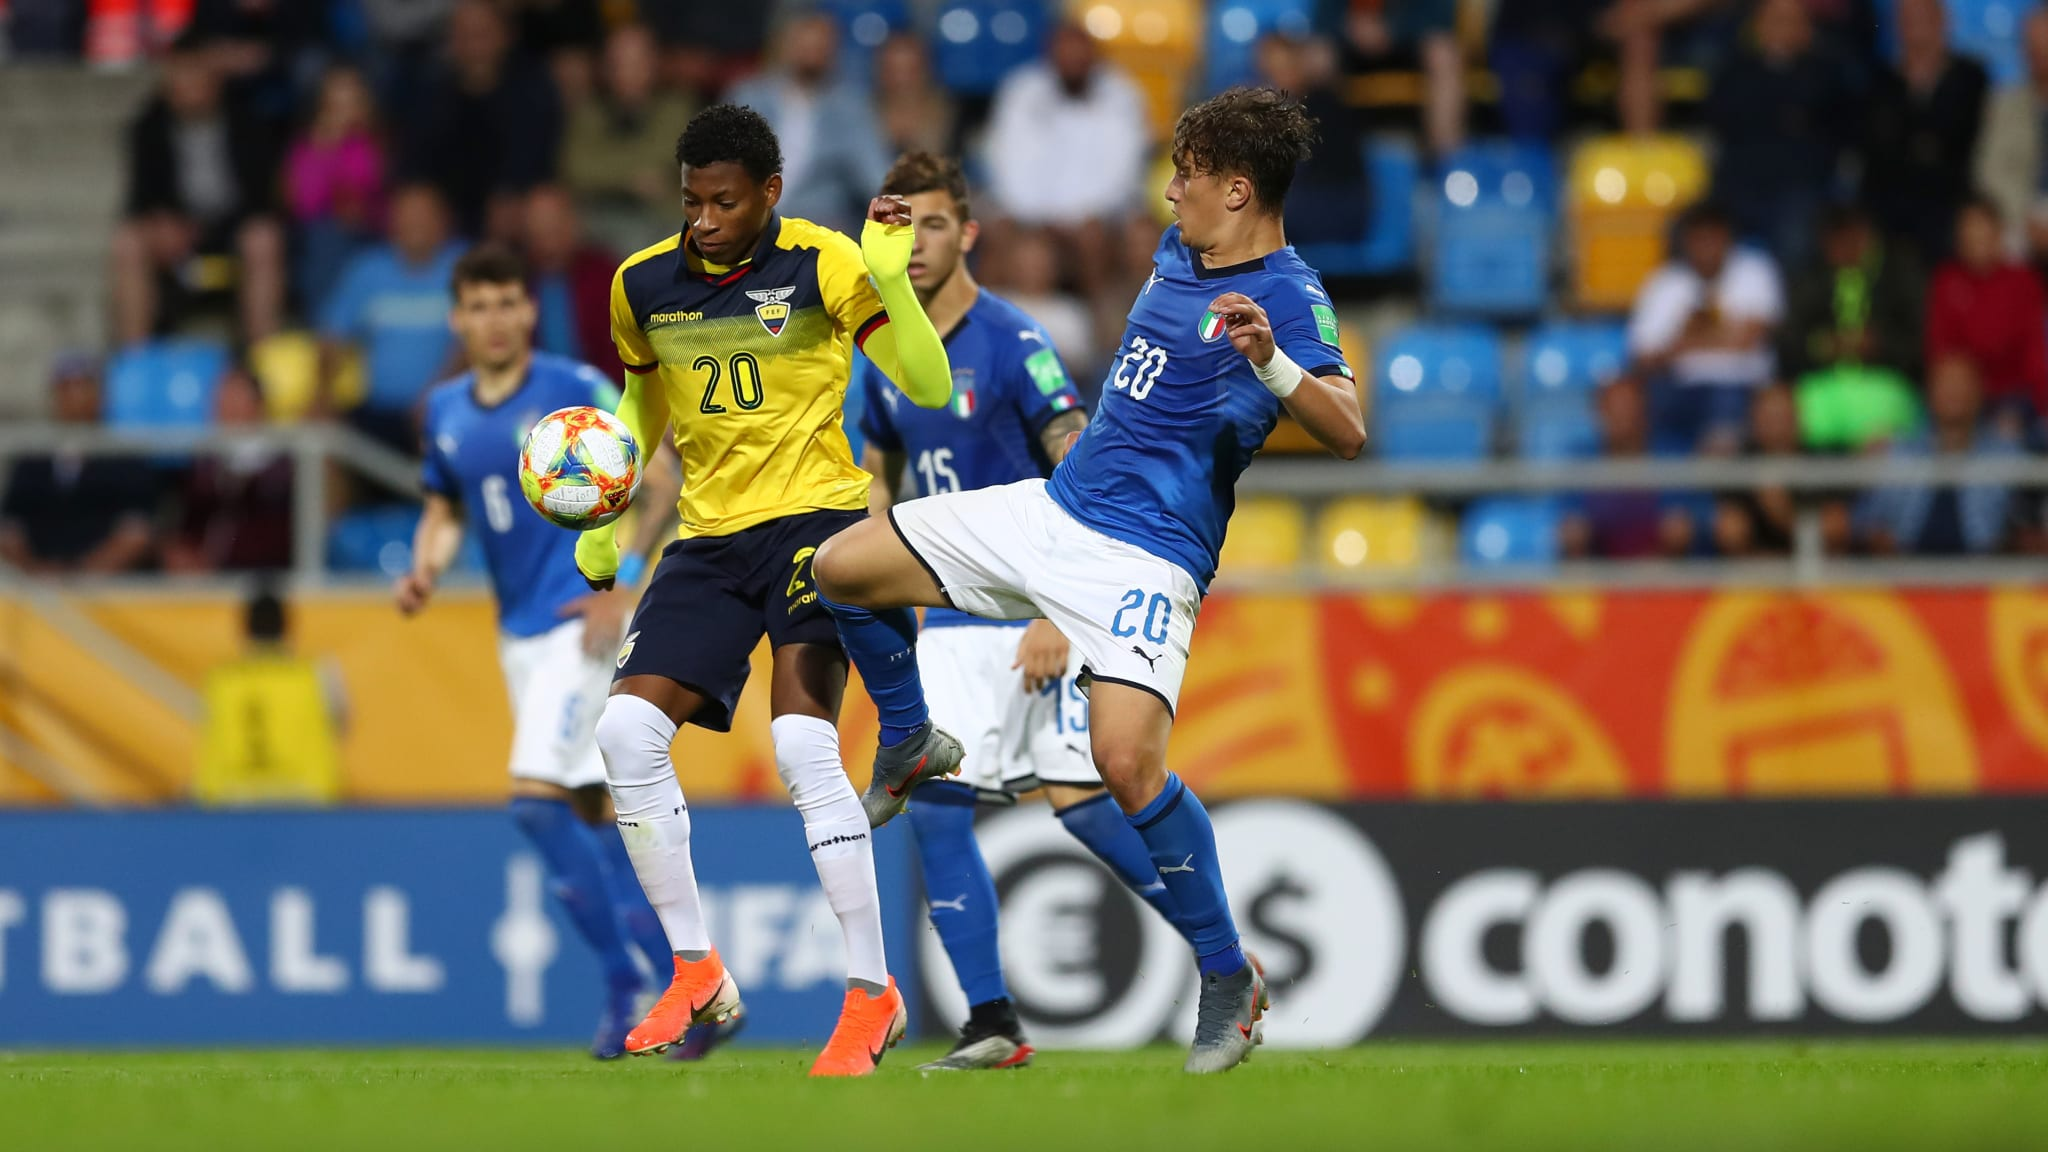 Salvatore Esposito of Italy battles for possession with Gonzalo Plata of Ecuador